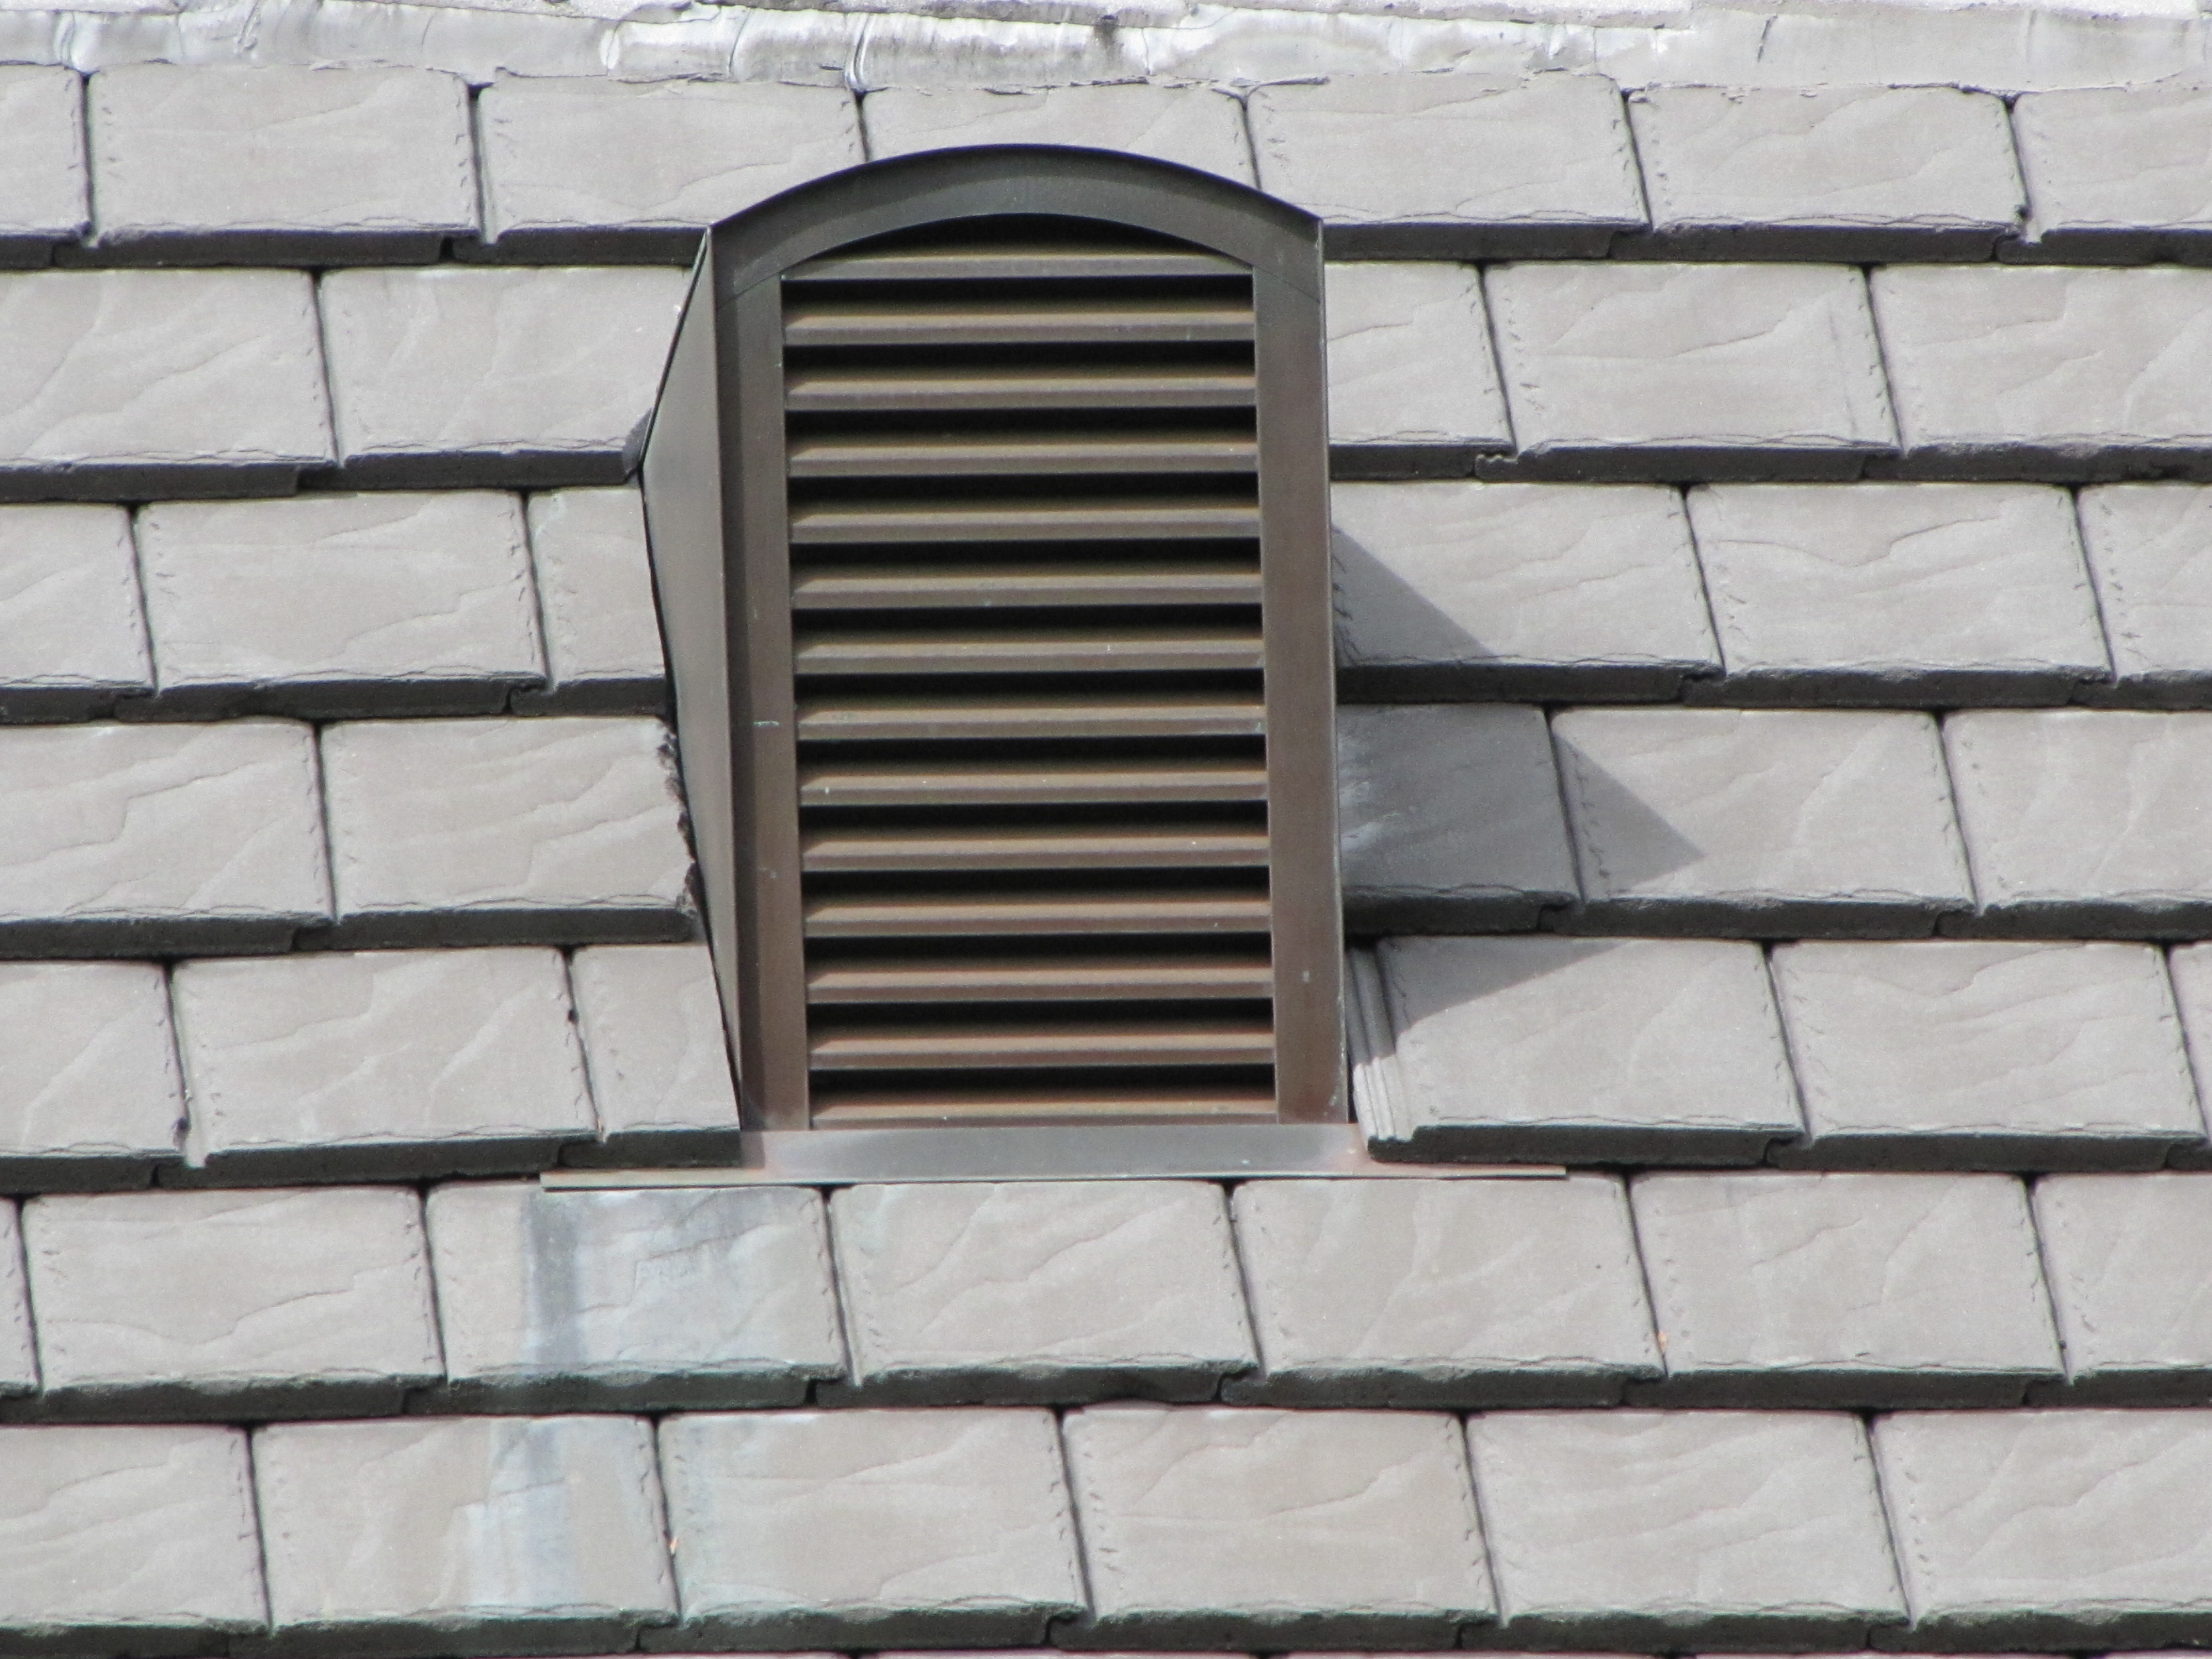 Dormer Roof Vents Amp Smartvent Can Be Use At The Eave Mid